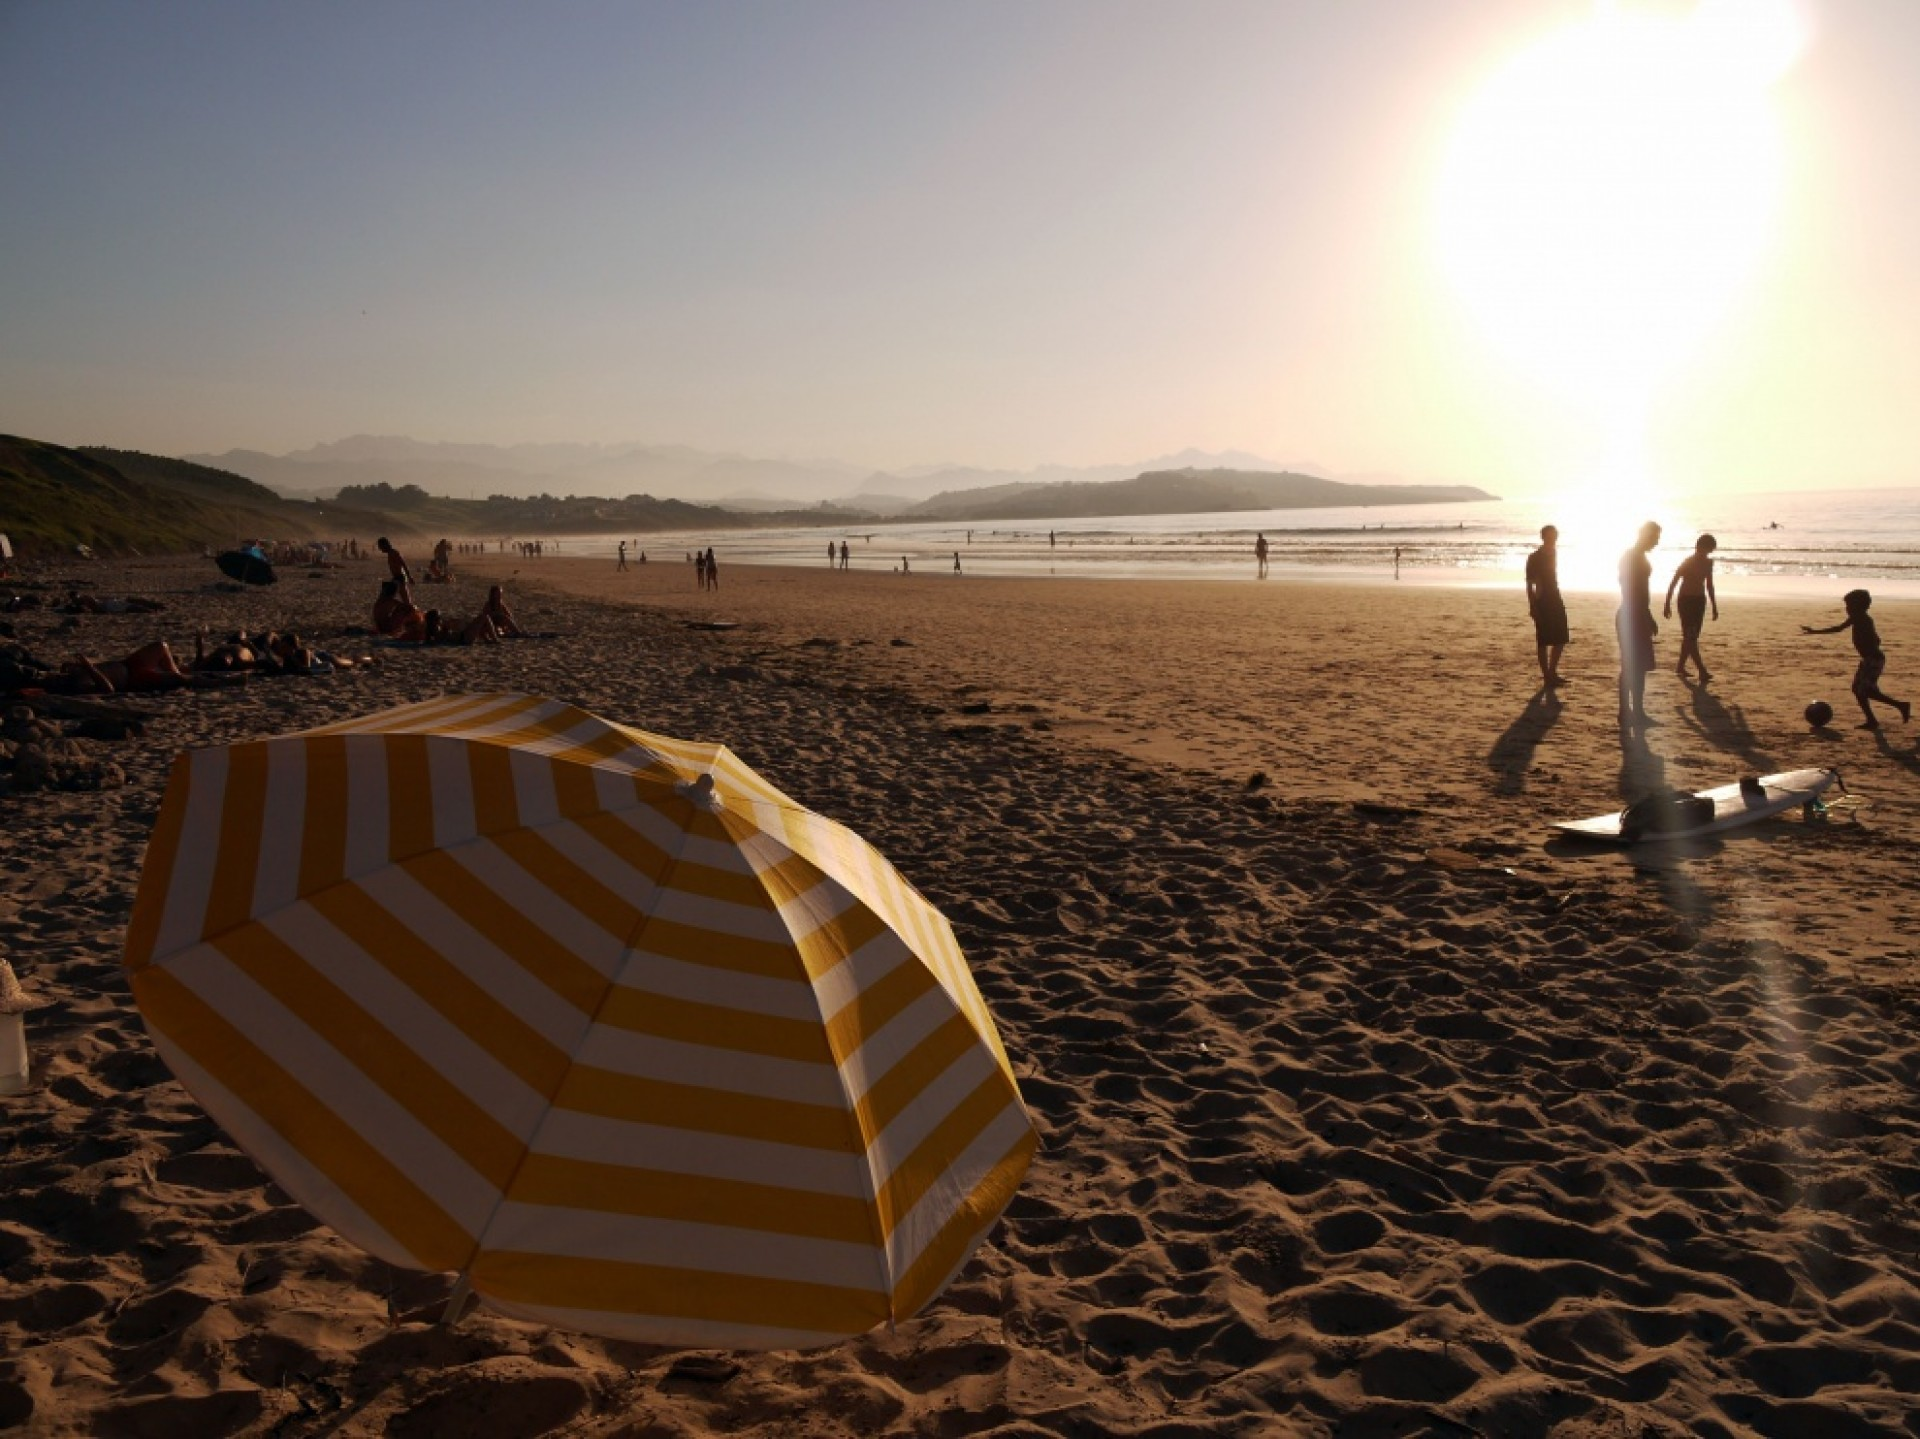 David Bignell's photo of Playa de Meron